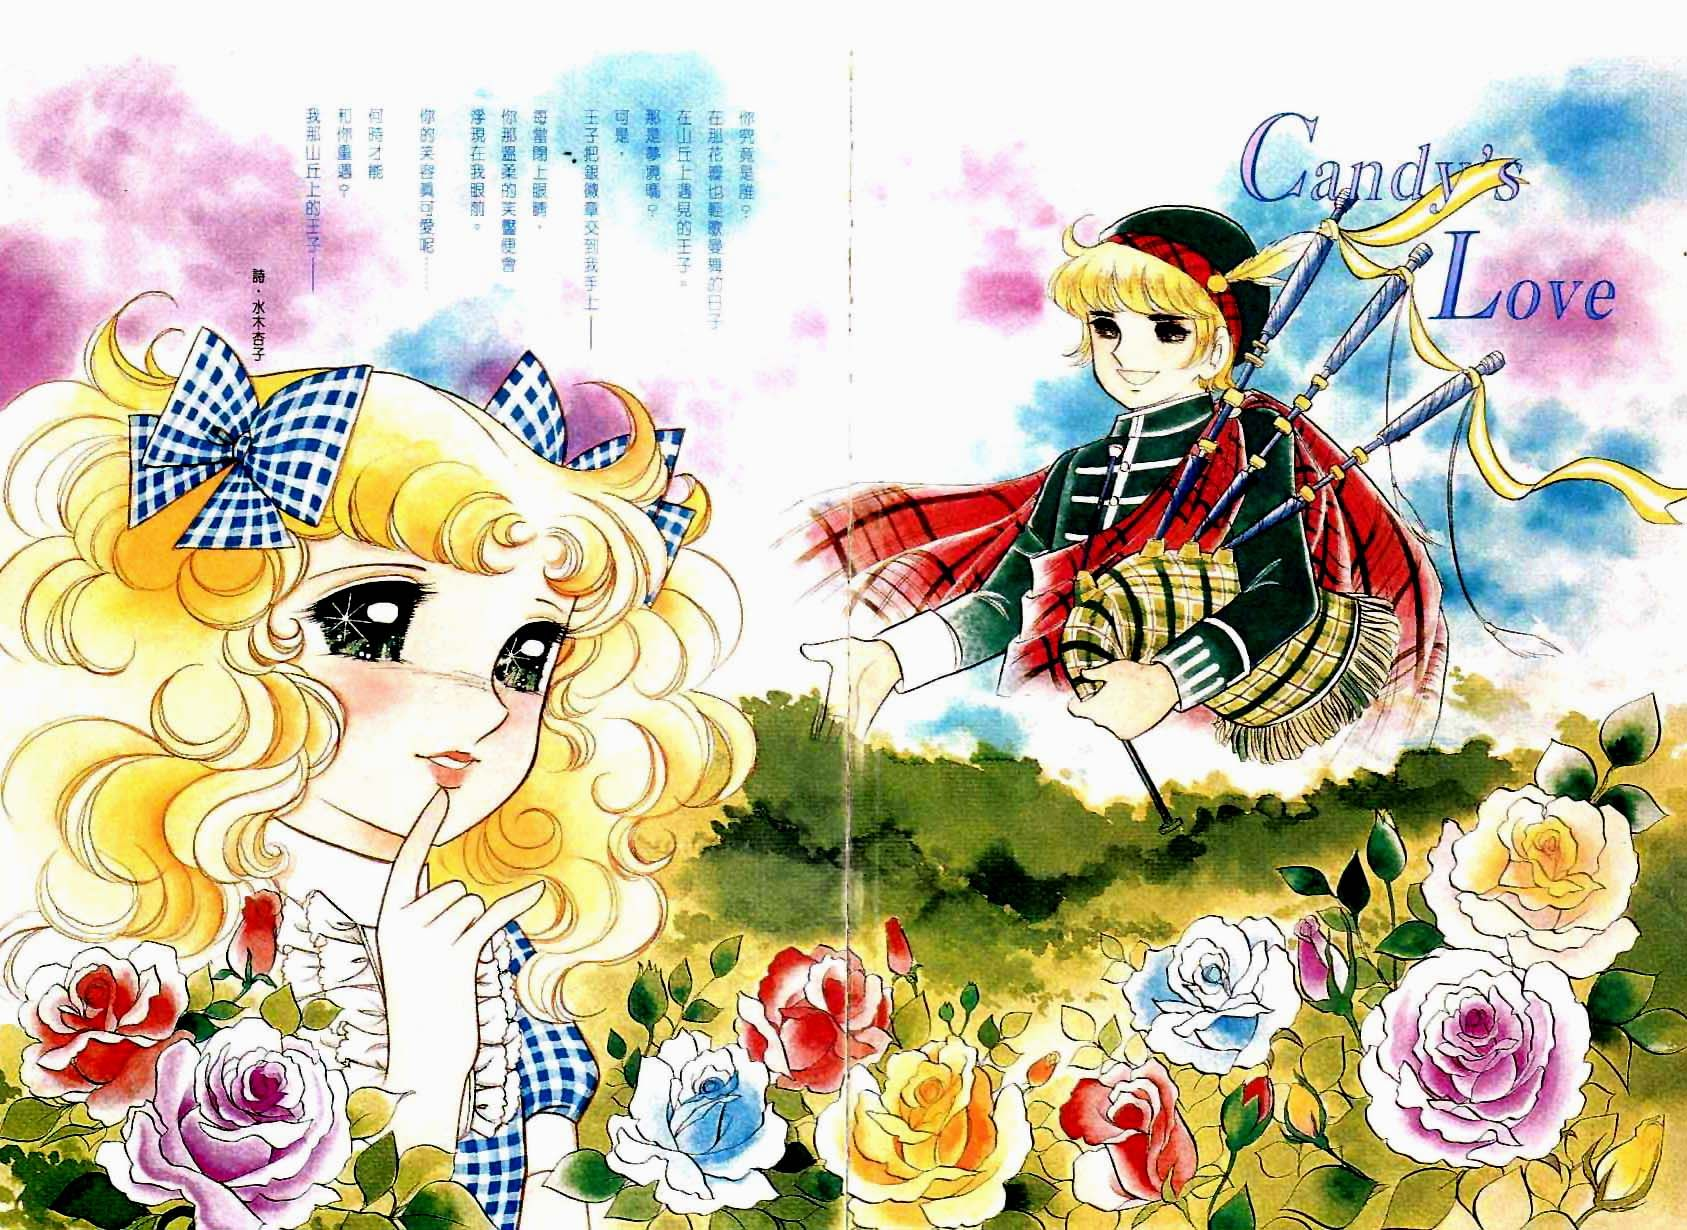 download candy candy candy anthony02 1687x1230 minitokyo キャンディキャンディ iphone 壁紙 イラスト